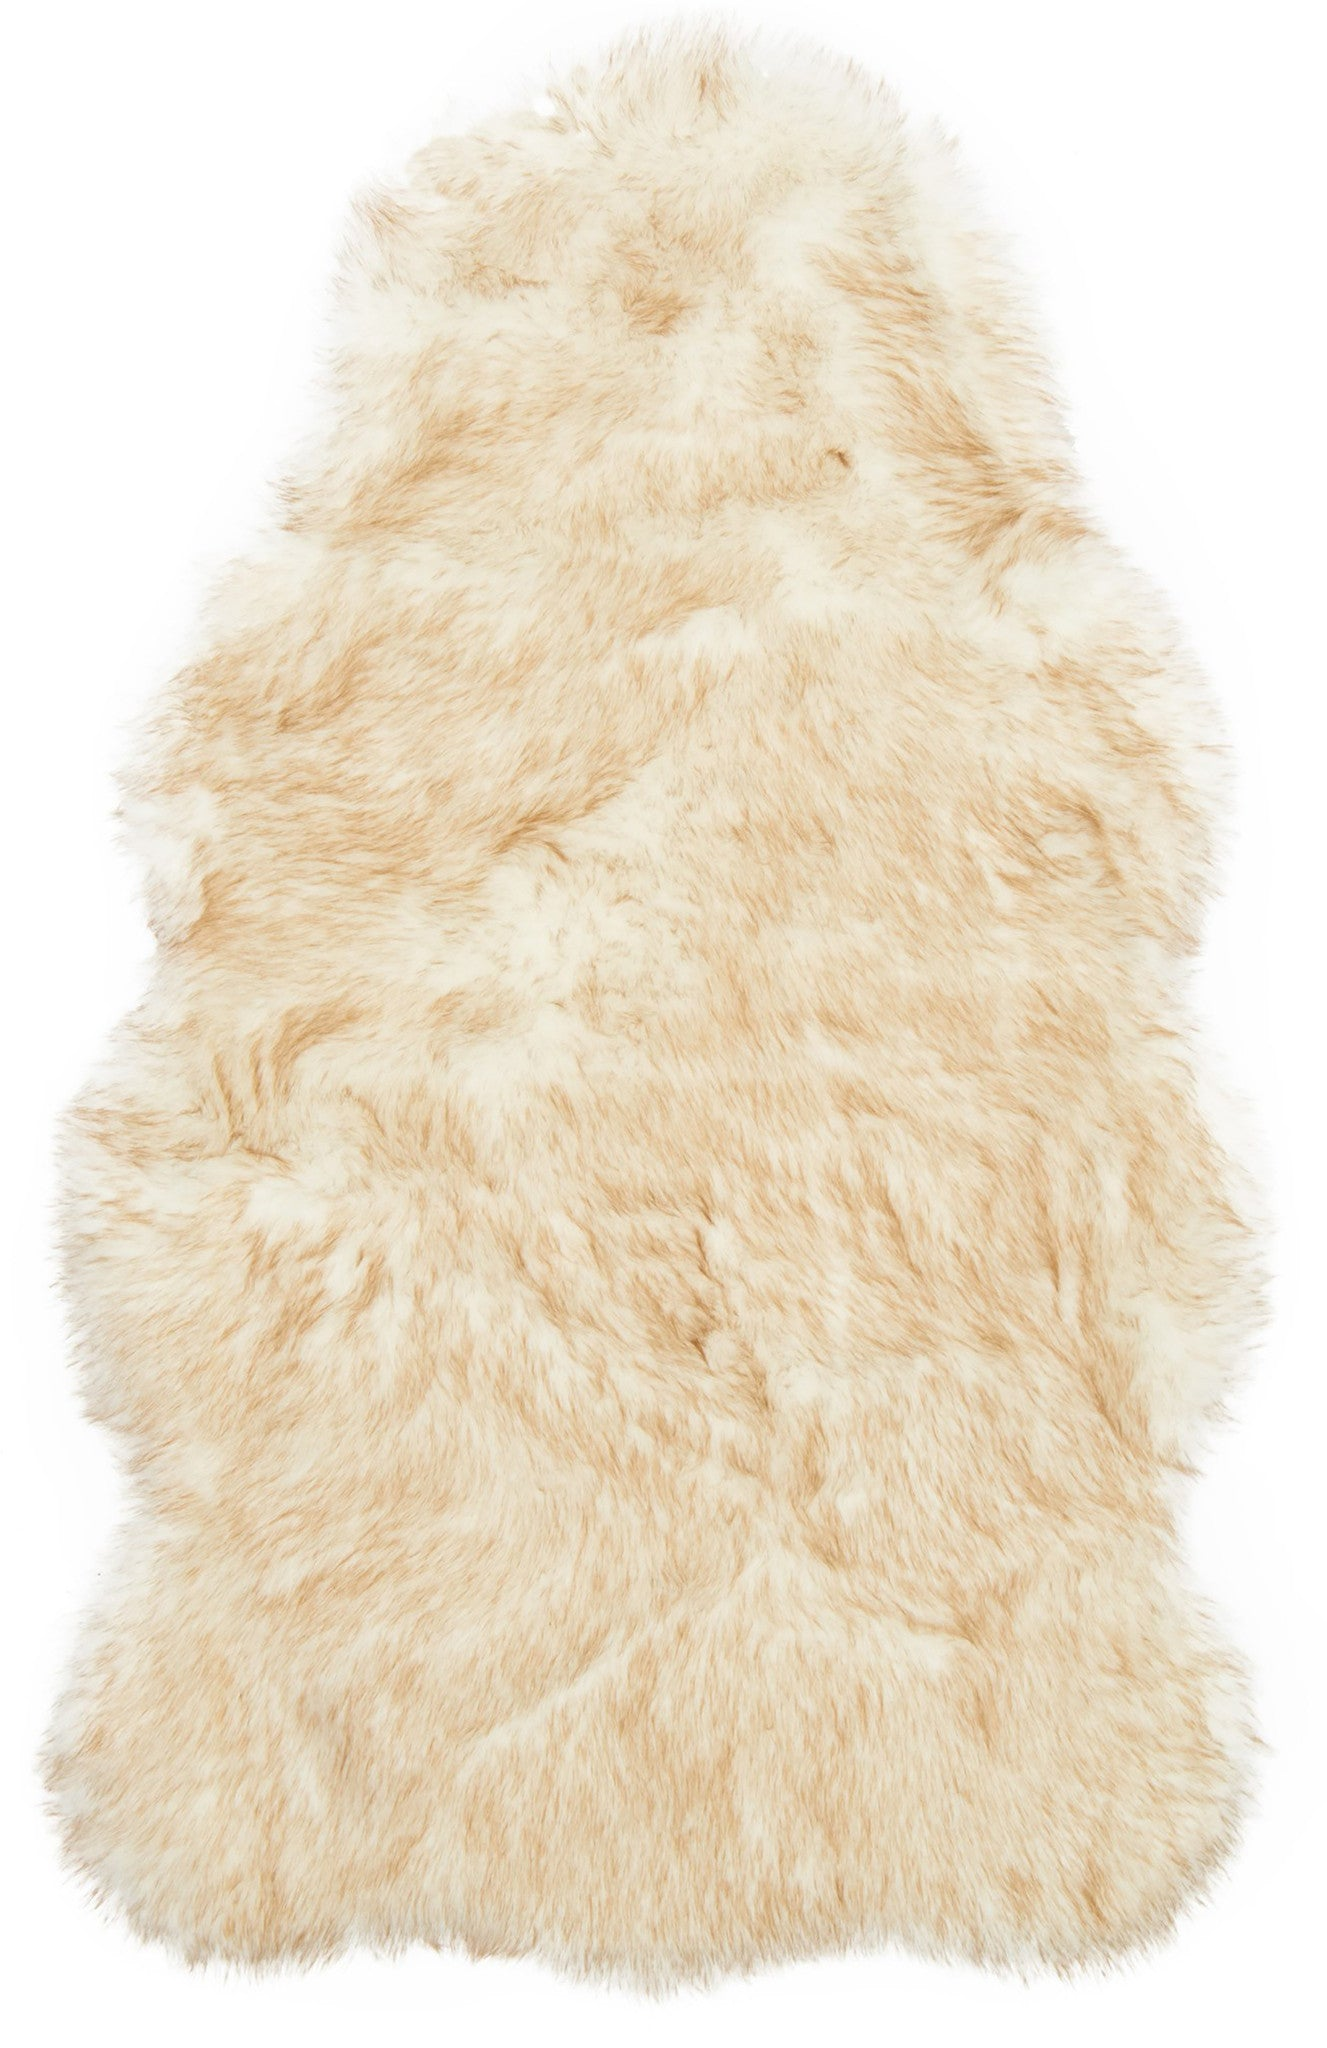 Ivory White Beige Faux Sheepskin Boho Fur Rug - Chair Cover